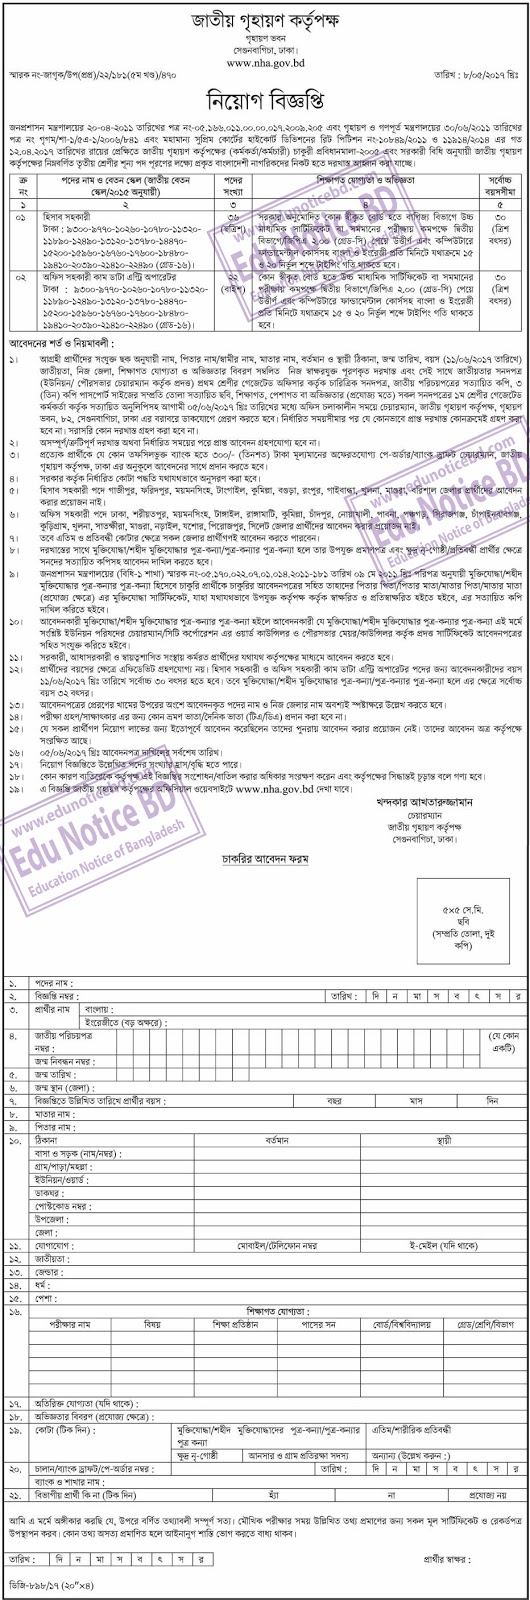 National Housing Authority Job Circular 2017 nha.gov.bd